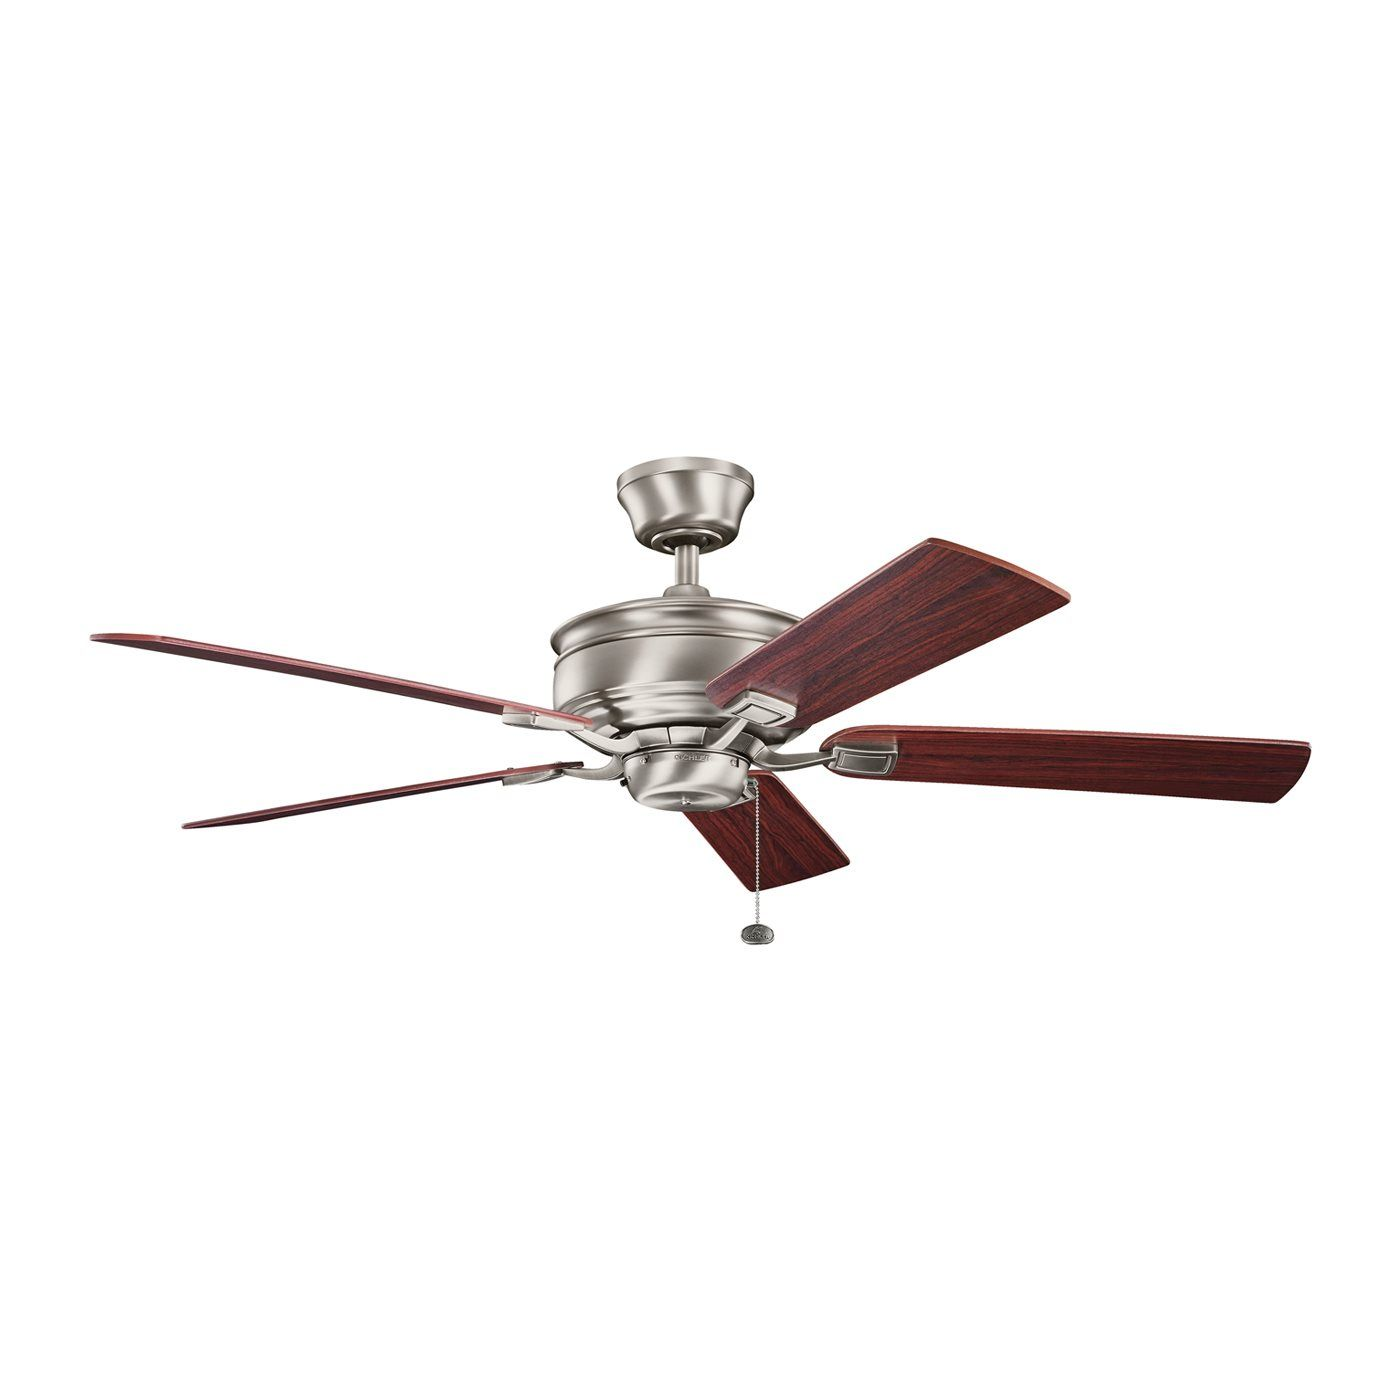 Kichler Lighting Duvall 52 in Ceiling Fan at ATG Stores